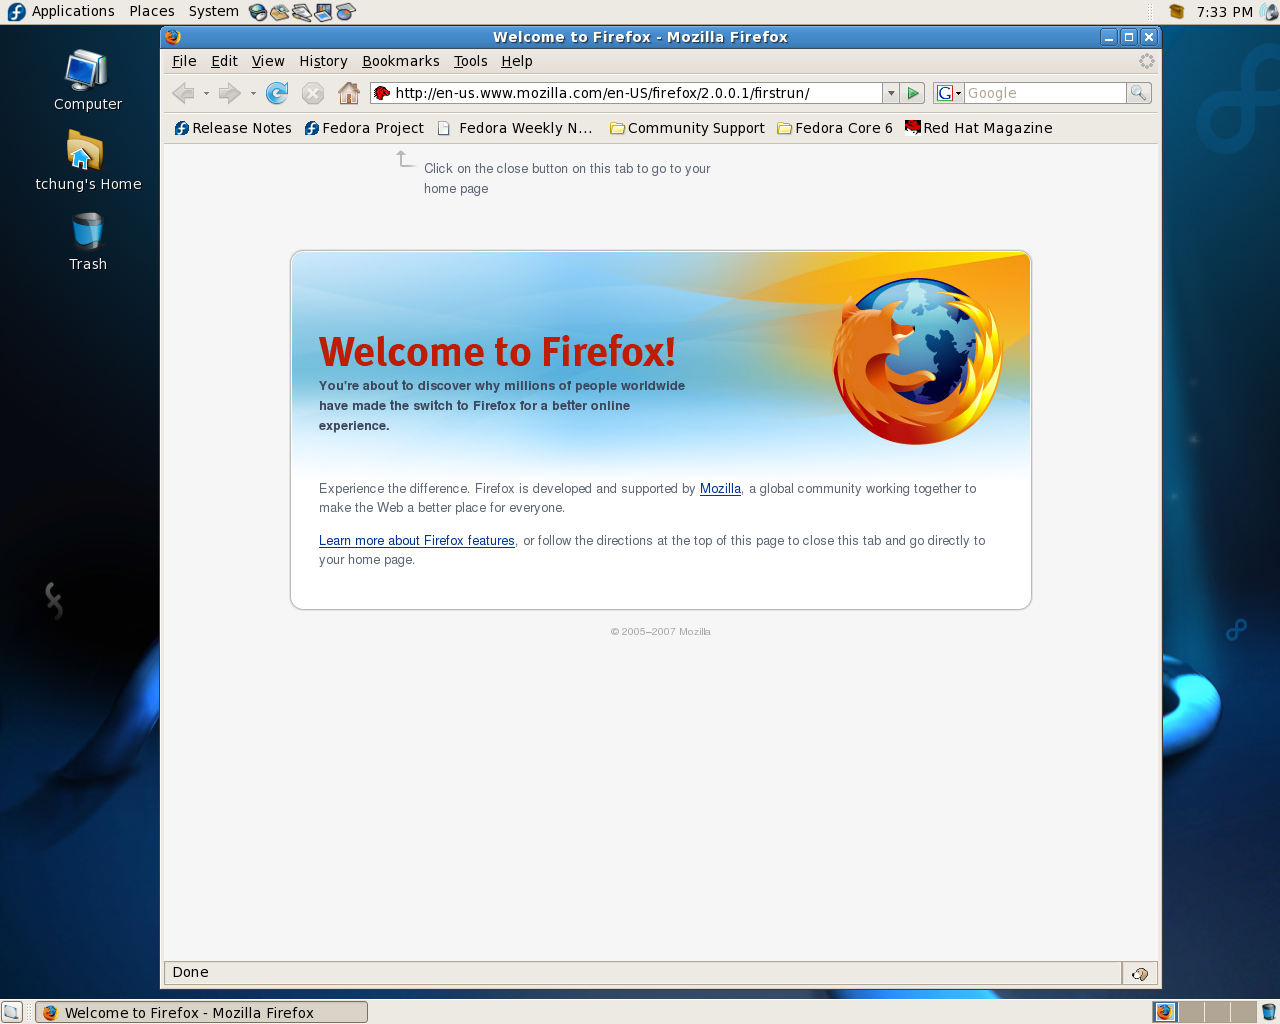 226934 – Update bookmarks for Fedora 7